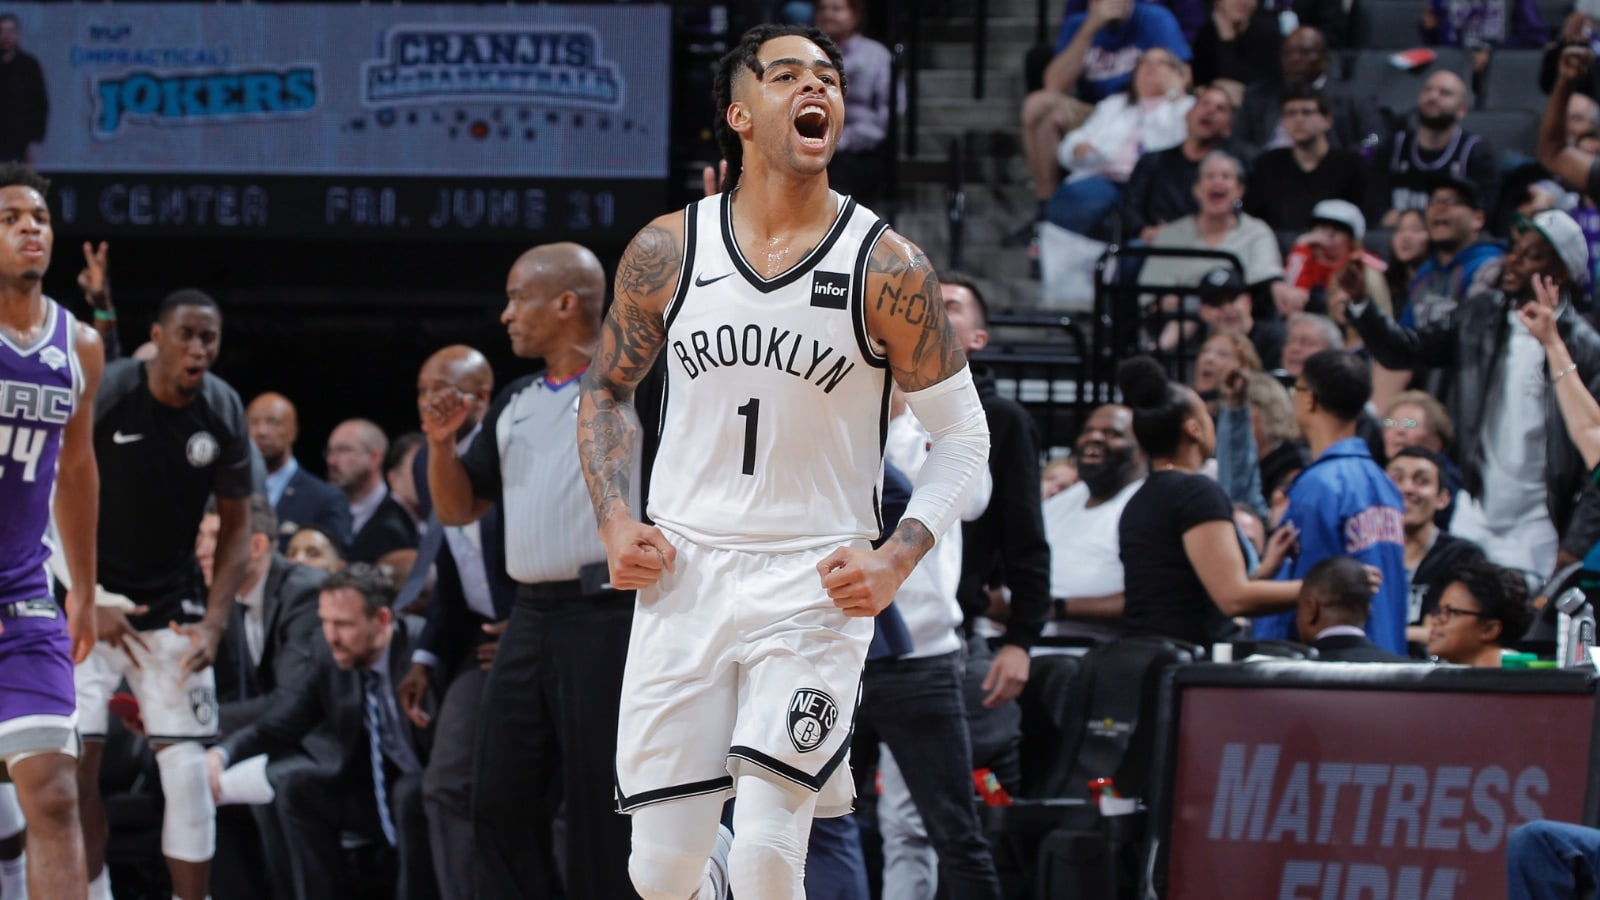 D'Angelo Russell #1 of the Brooklyn Nets reacts during the game against the Sacramento Kings on March 19, 2019 at Golden 1 Center in Sacramento, California.